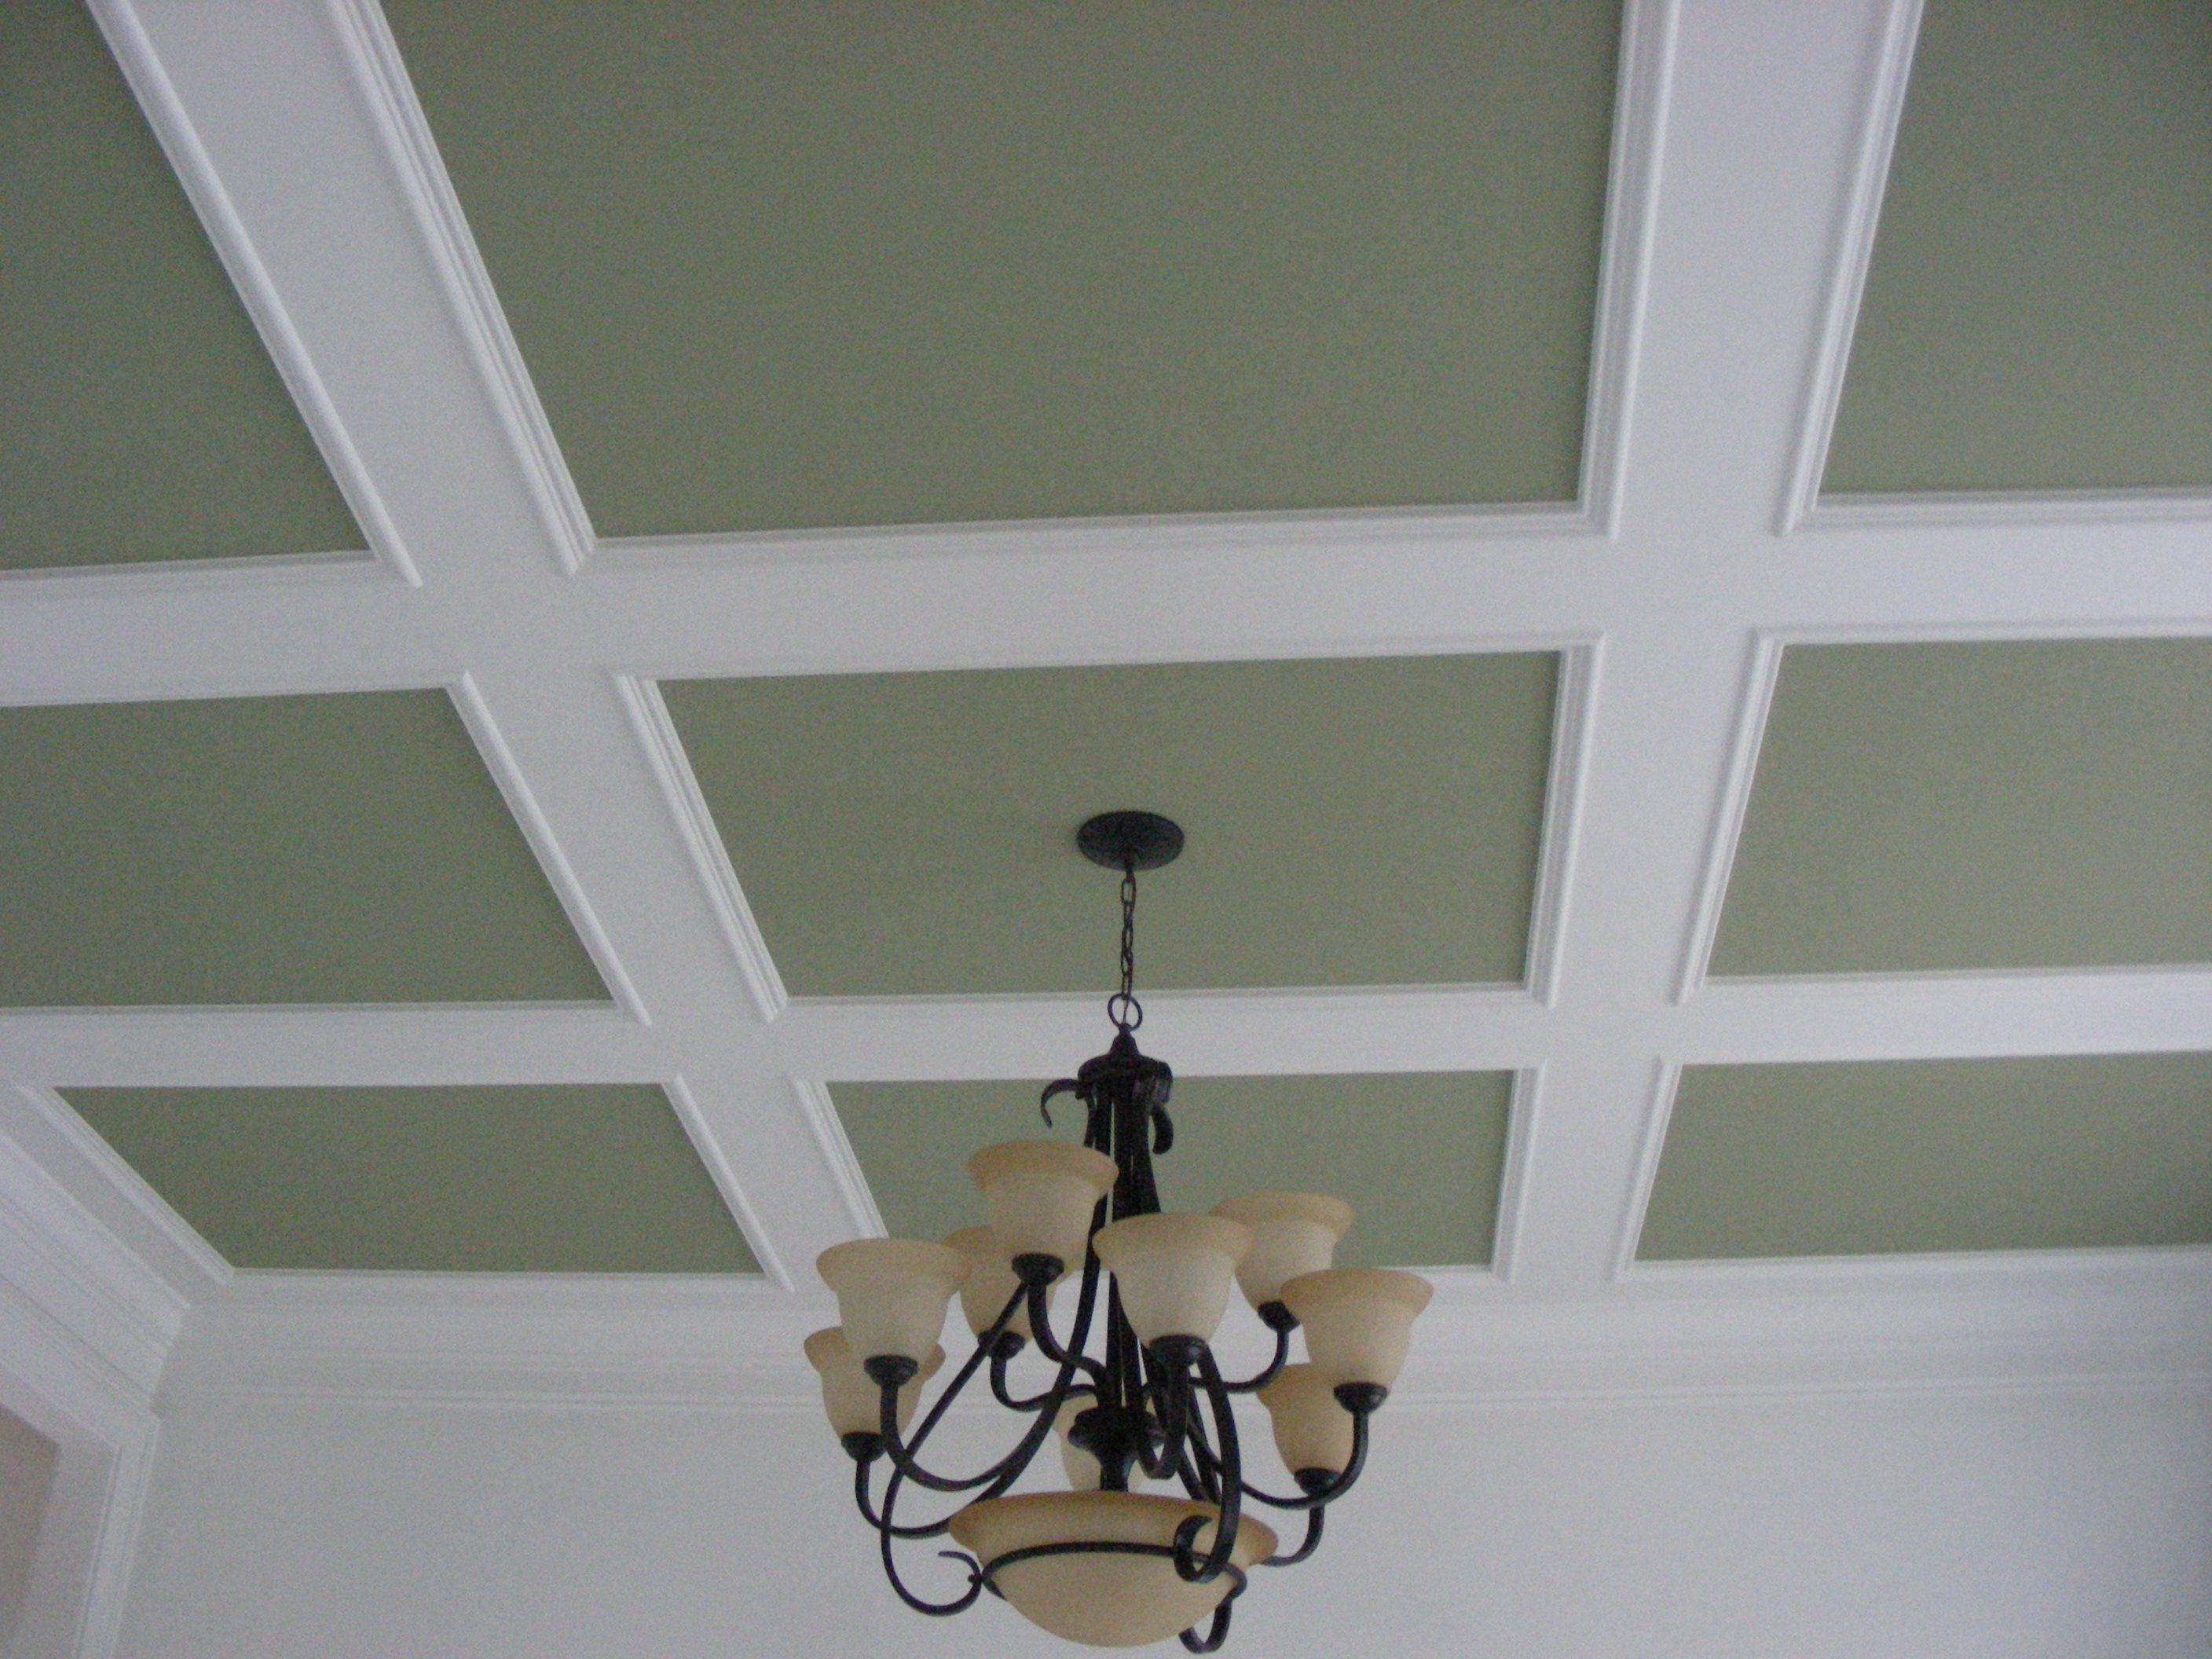 Design Ceiling Trim Ideas coffered ceiling trim suspended drop living room inspiration drop